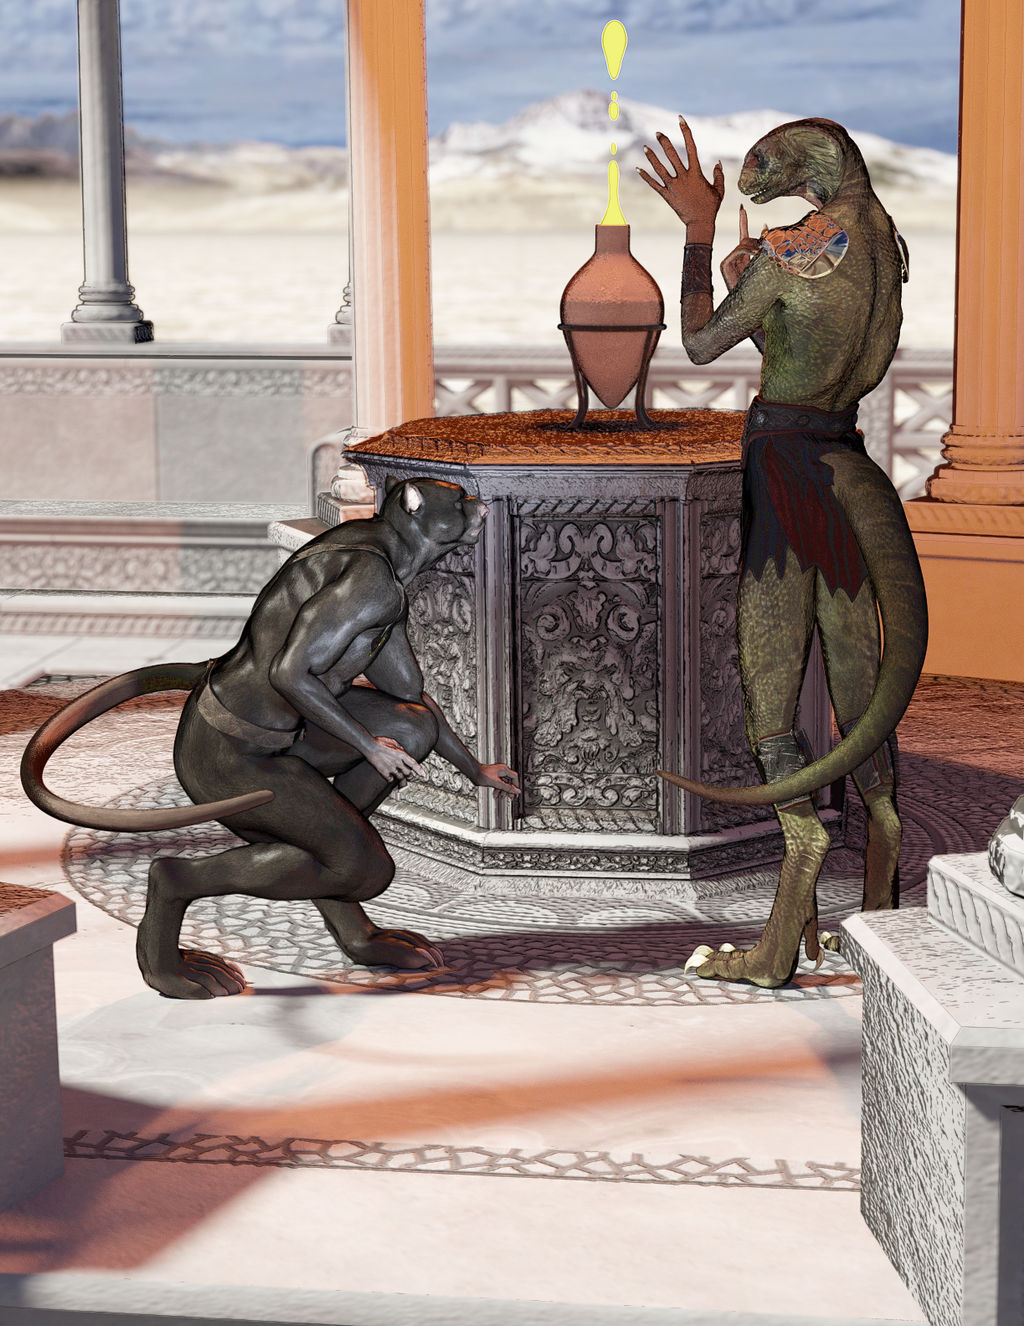 Ratman and Asaatthi Semicolored by Willbear